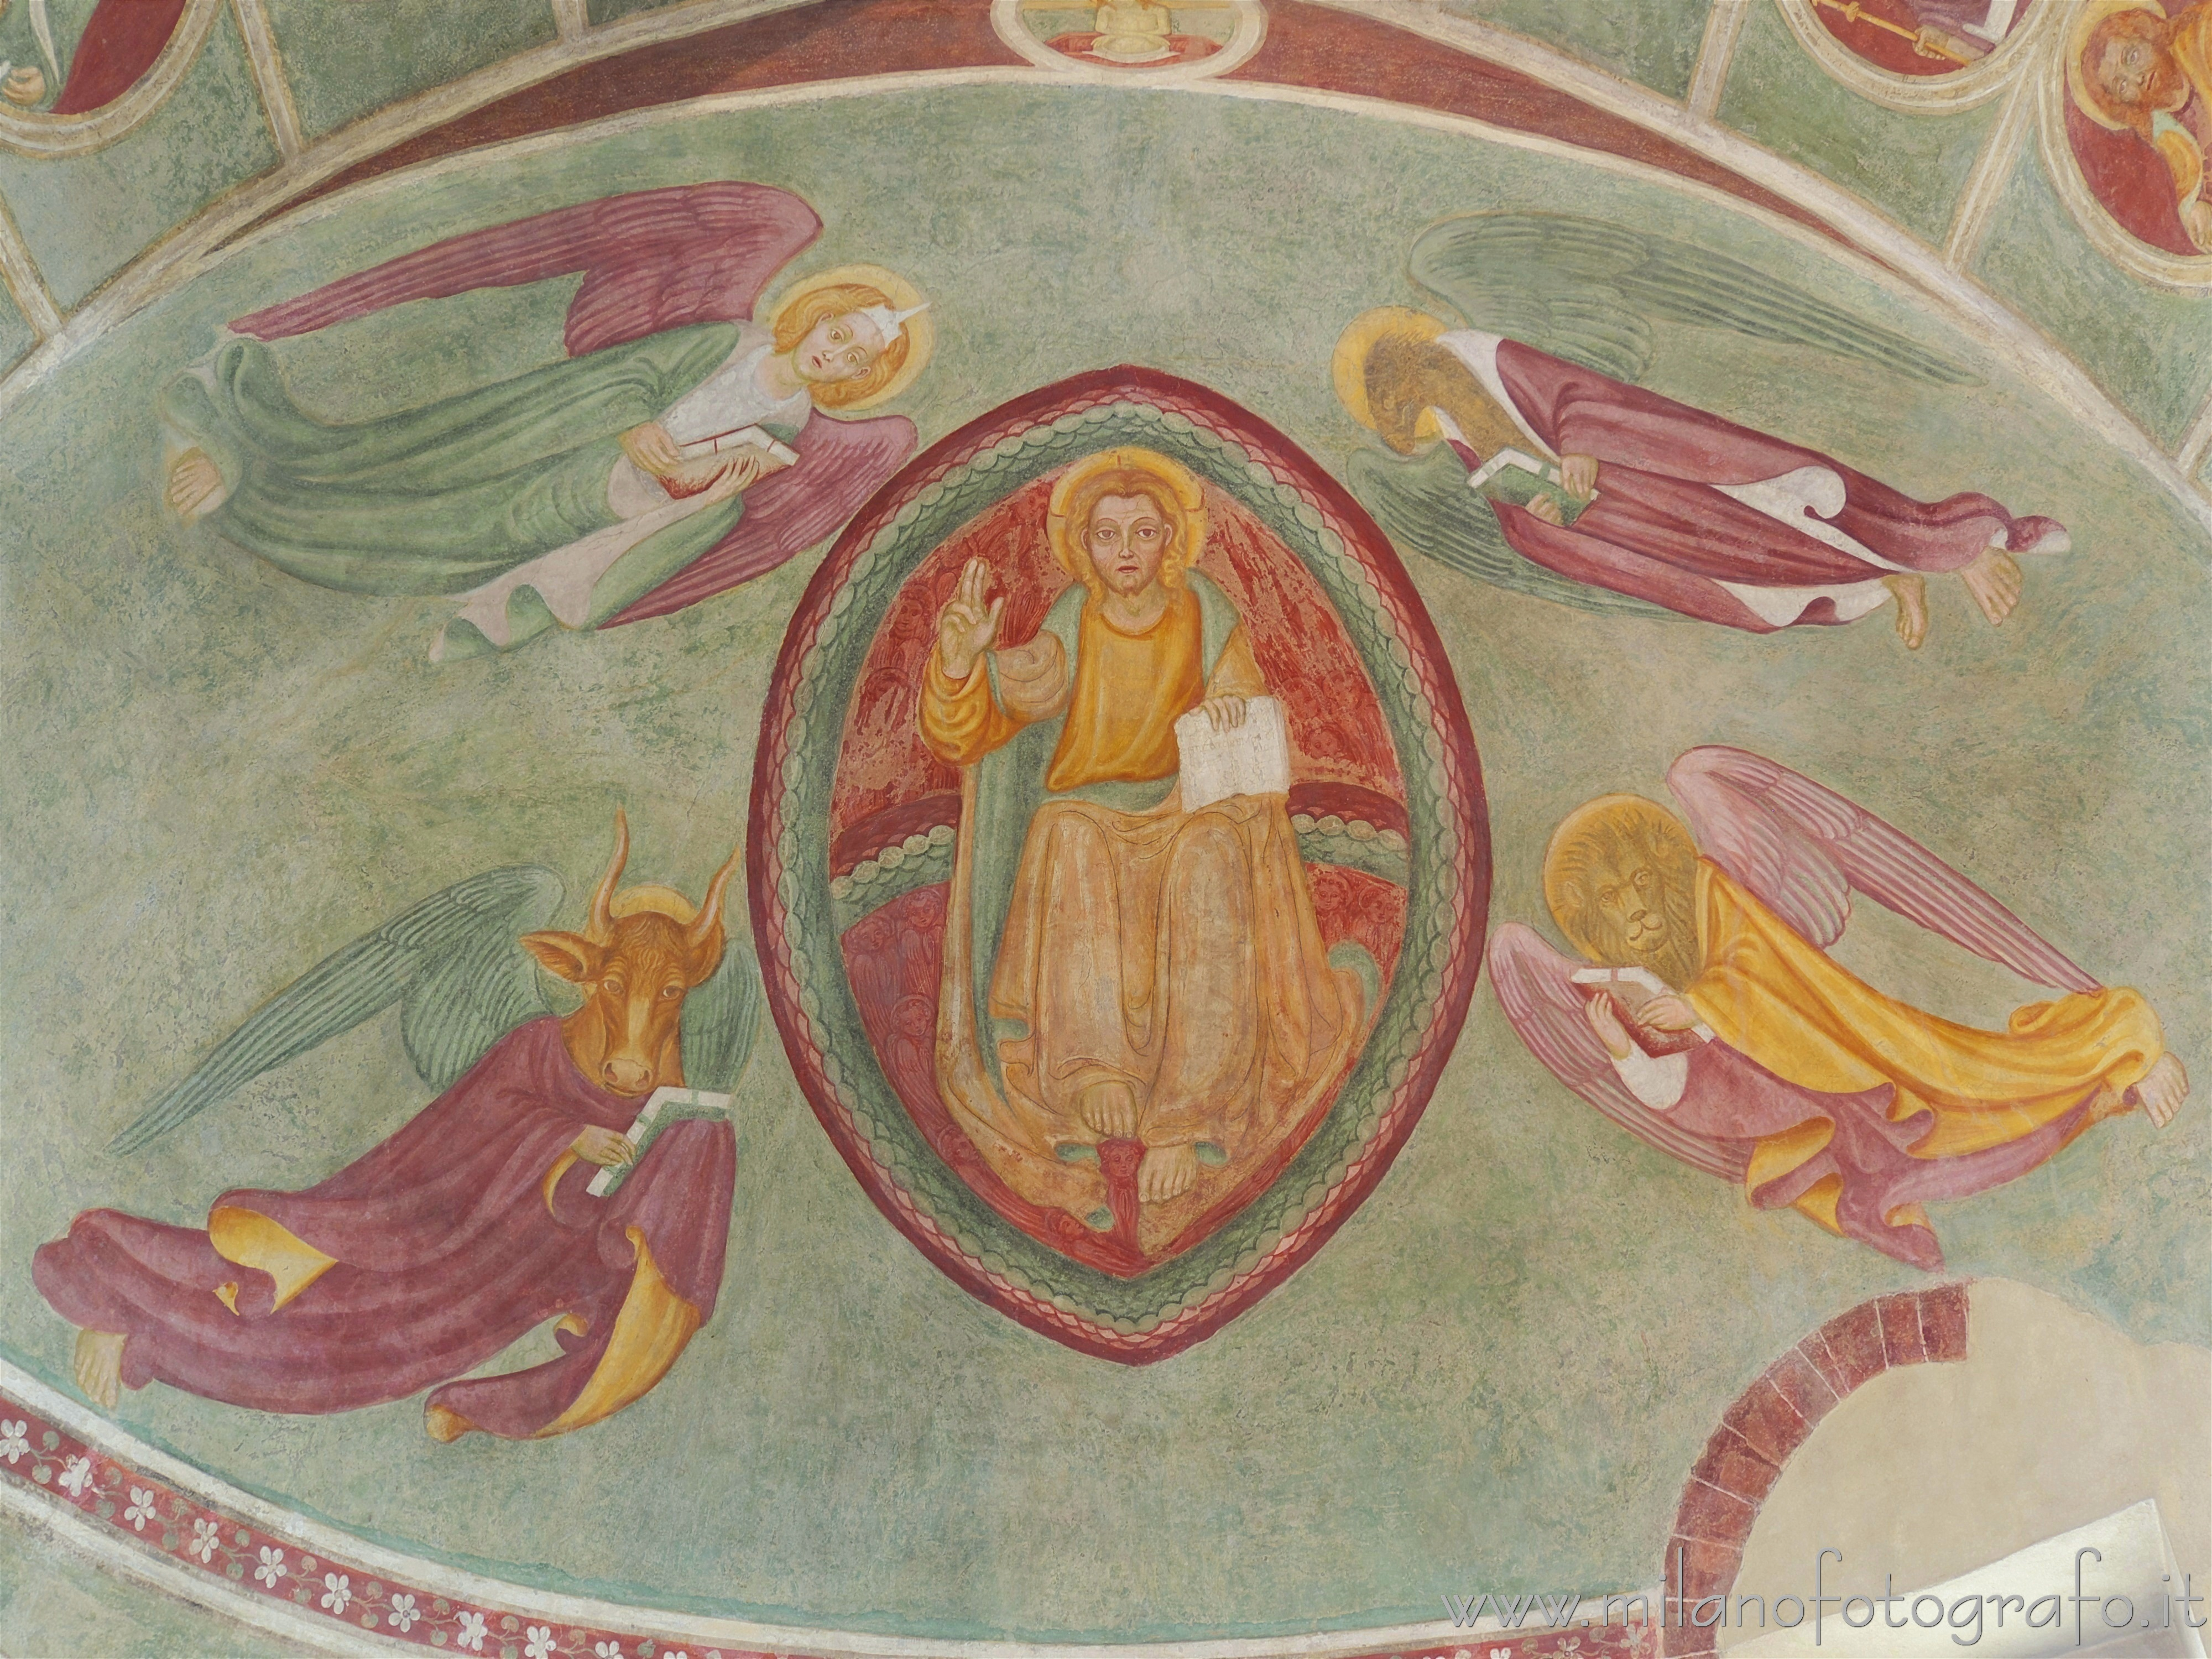 Milan (Italy): Frescoed vault of the apse of the Church of San Siro alla Vepra - Milan (Italy)